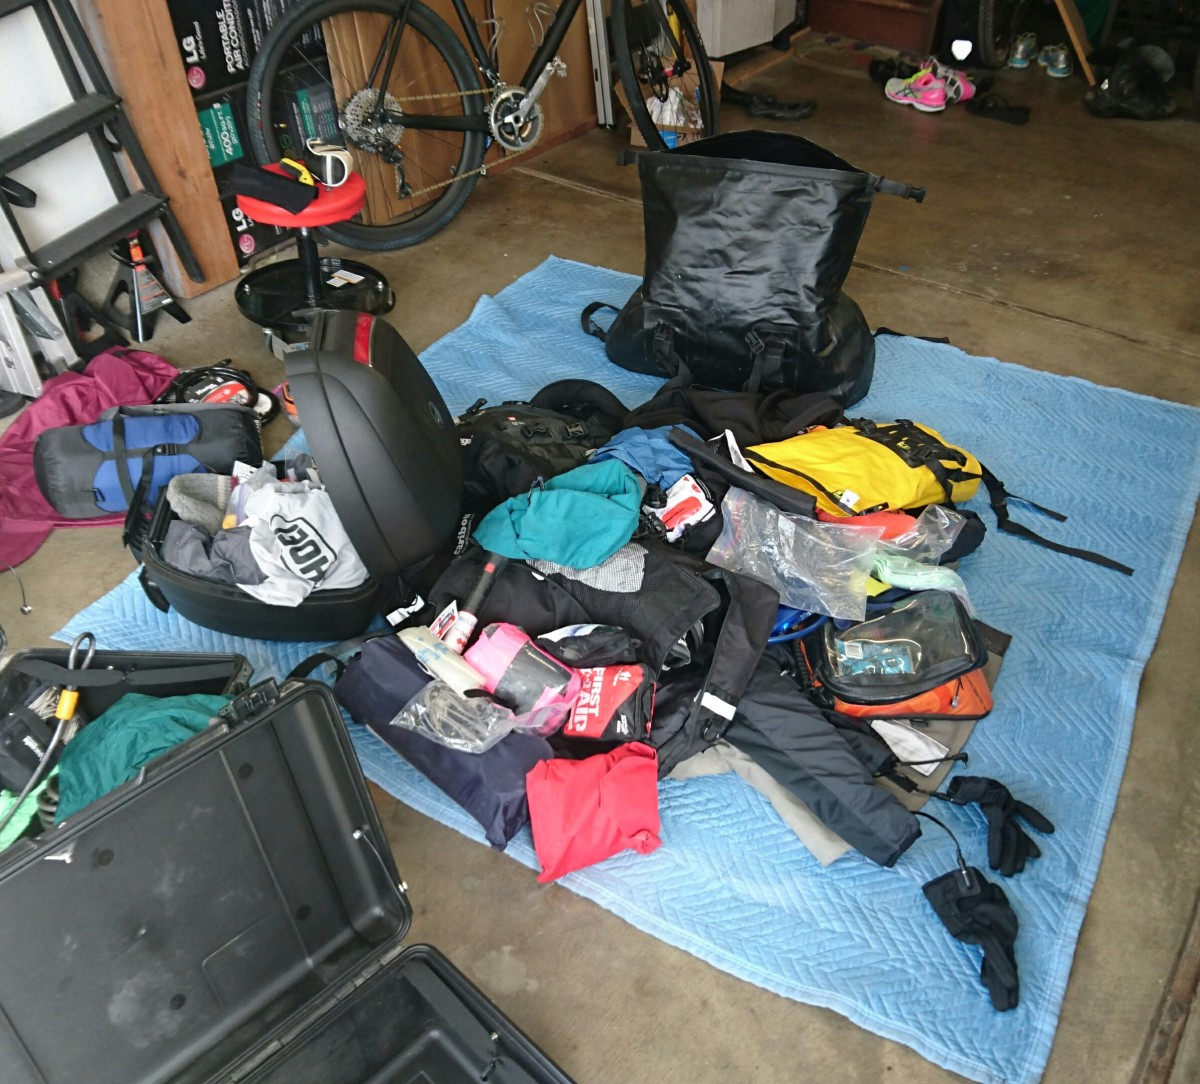 Death Valley Preparation 1:  Packing for Bicycle/Motorcycle Adventuring